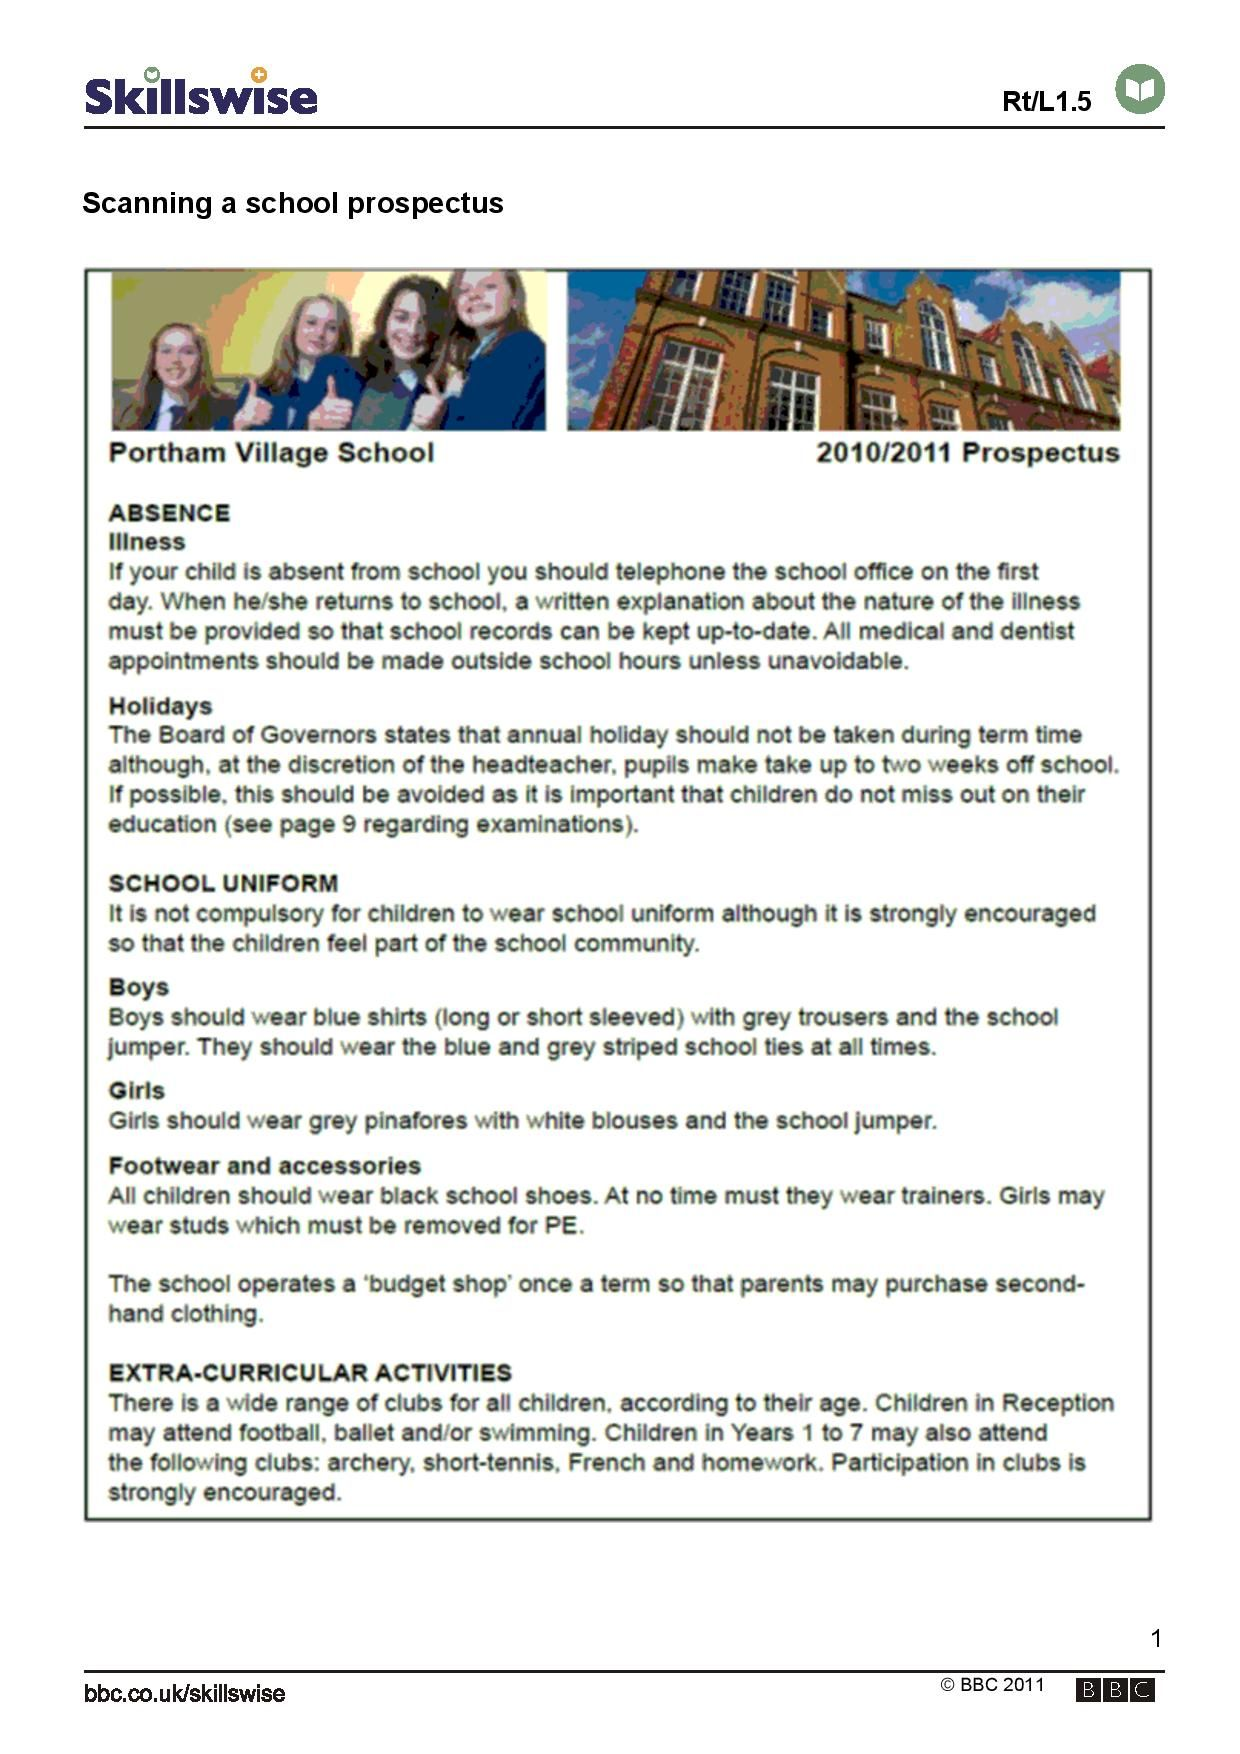 Scanning A School Prospectus Exercise In Scanning An